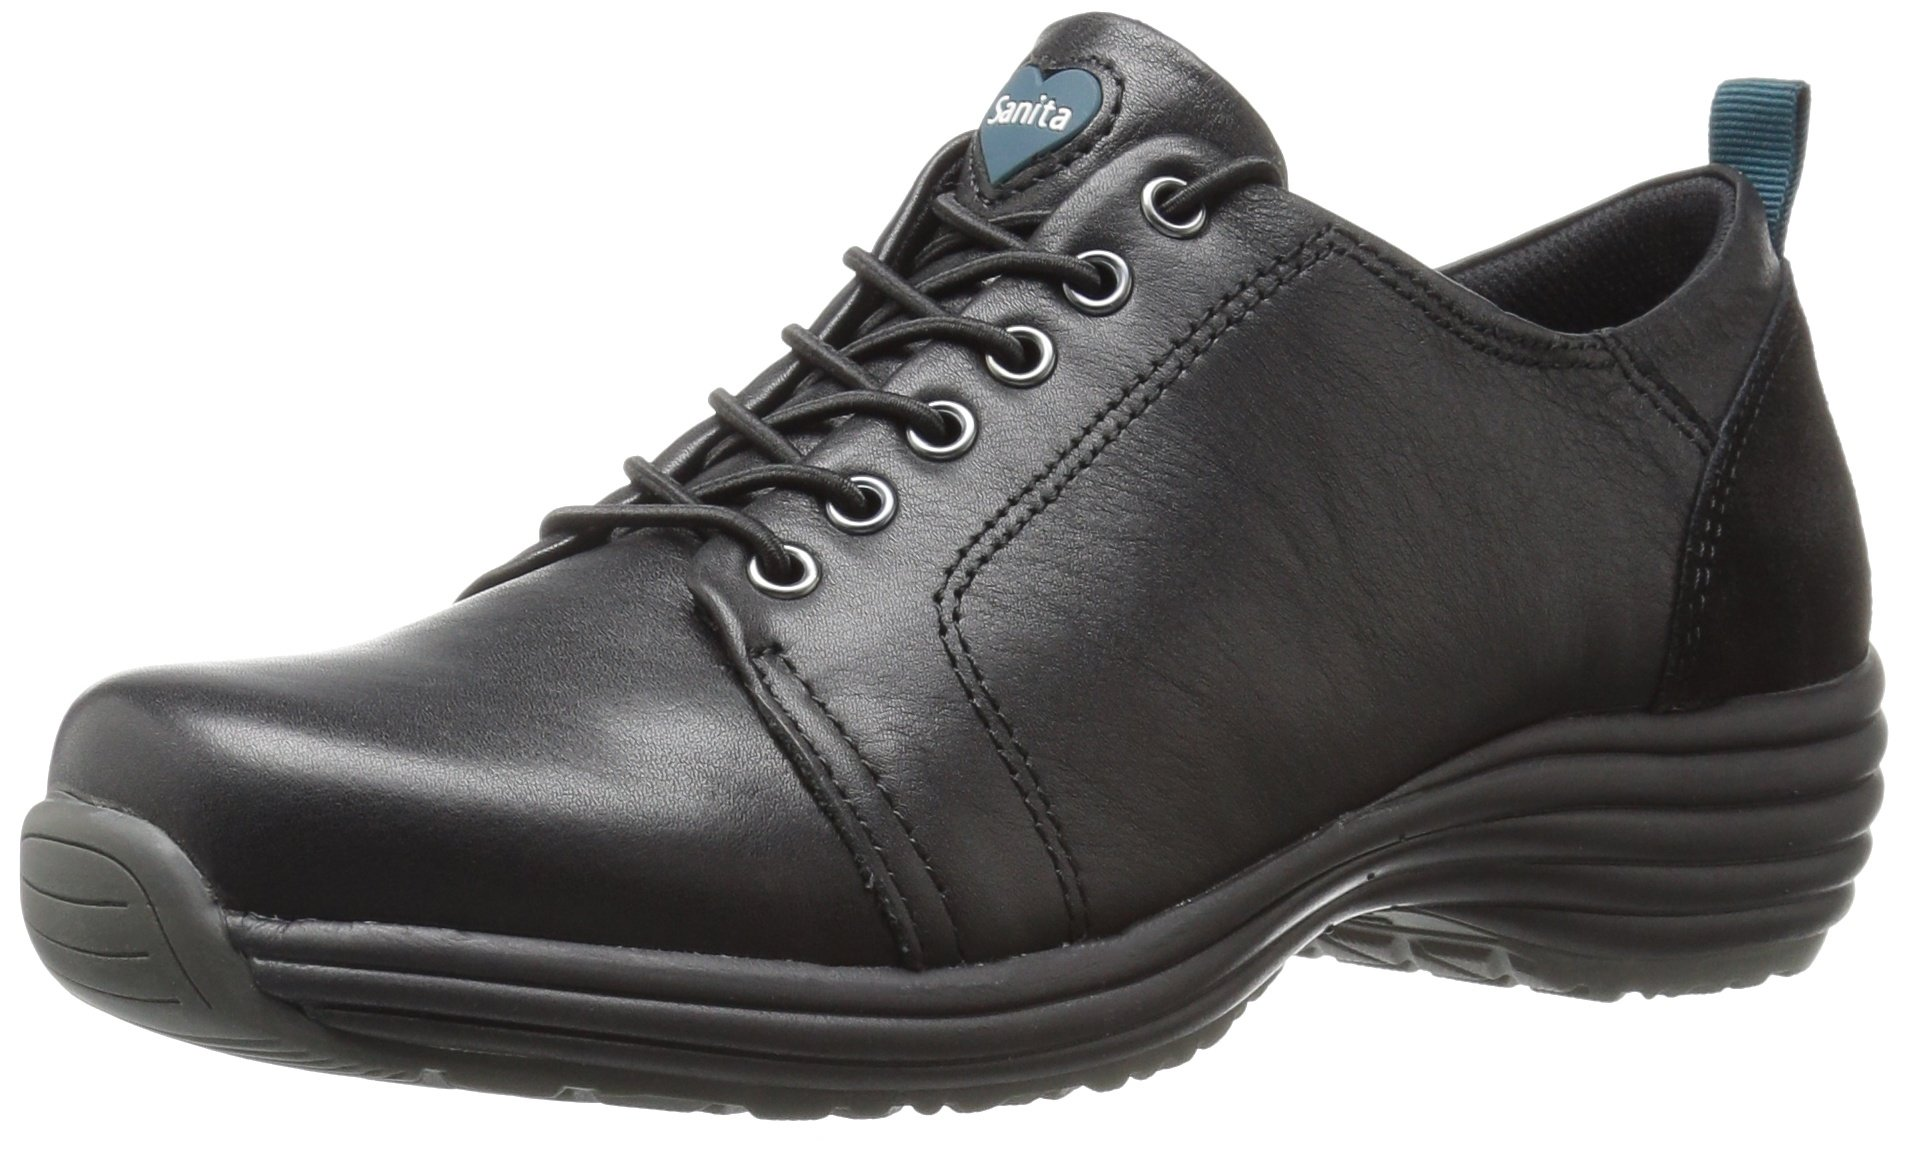 Sanita Women's O2 Luxe Prosper Work Shoe, Black, 41 EU/10 M US